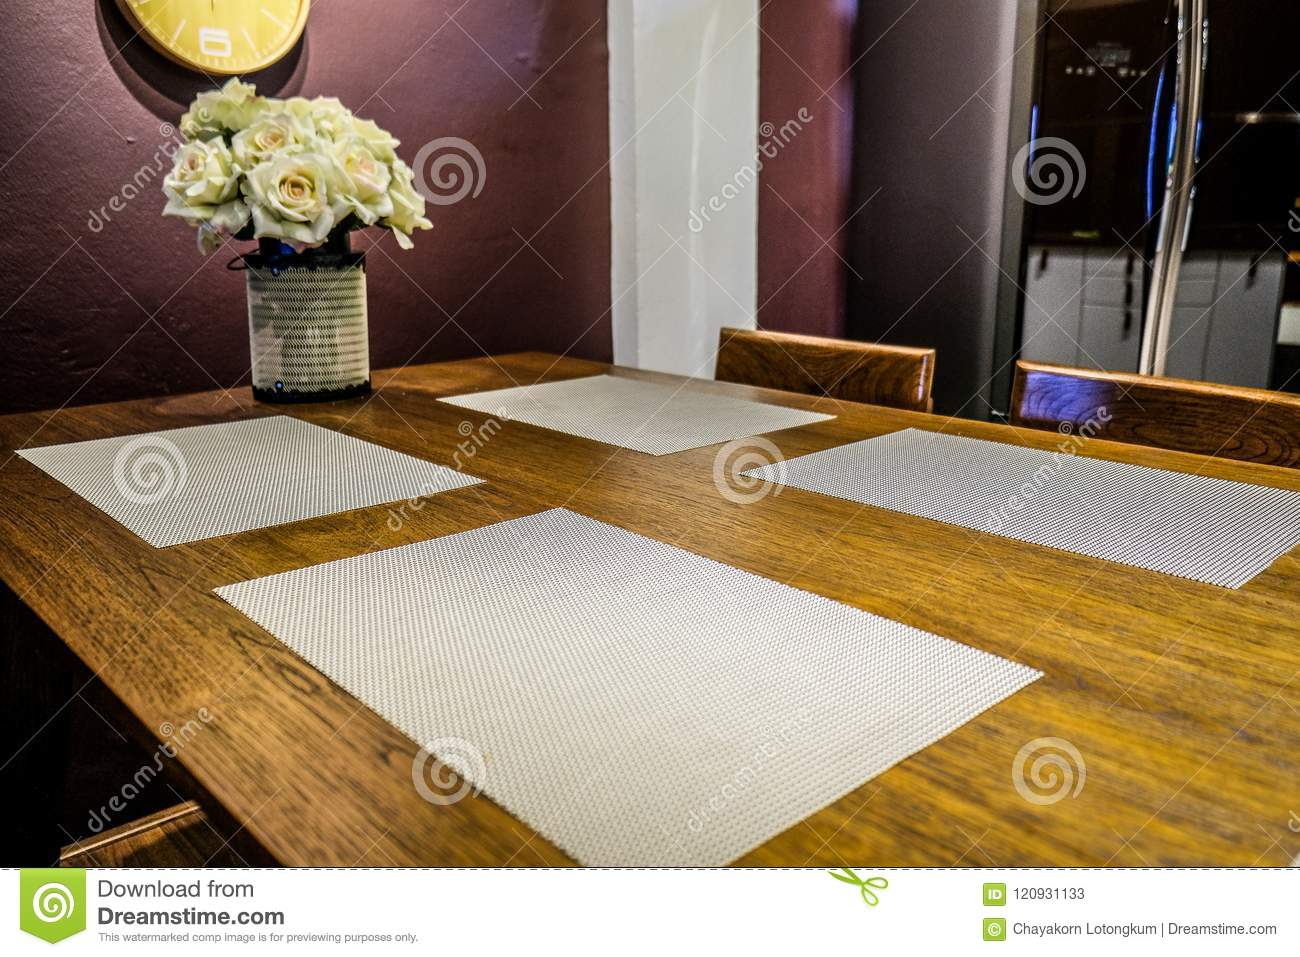 Dining Room with dining textile and place mat